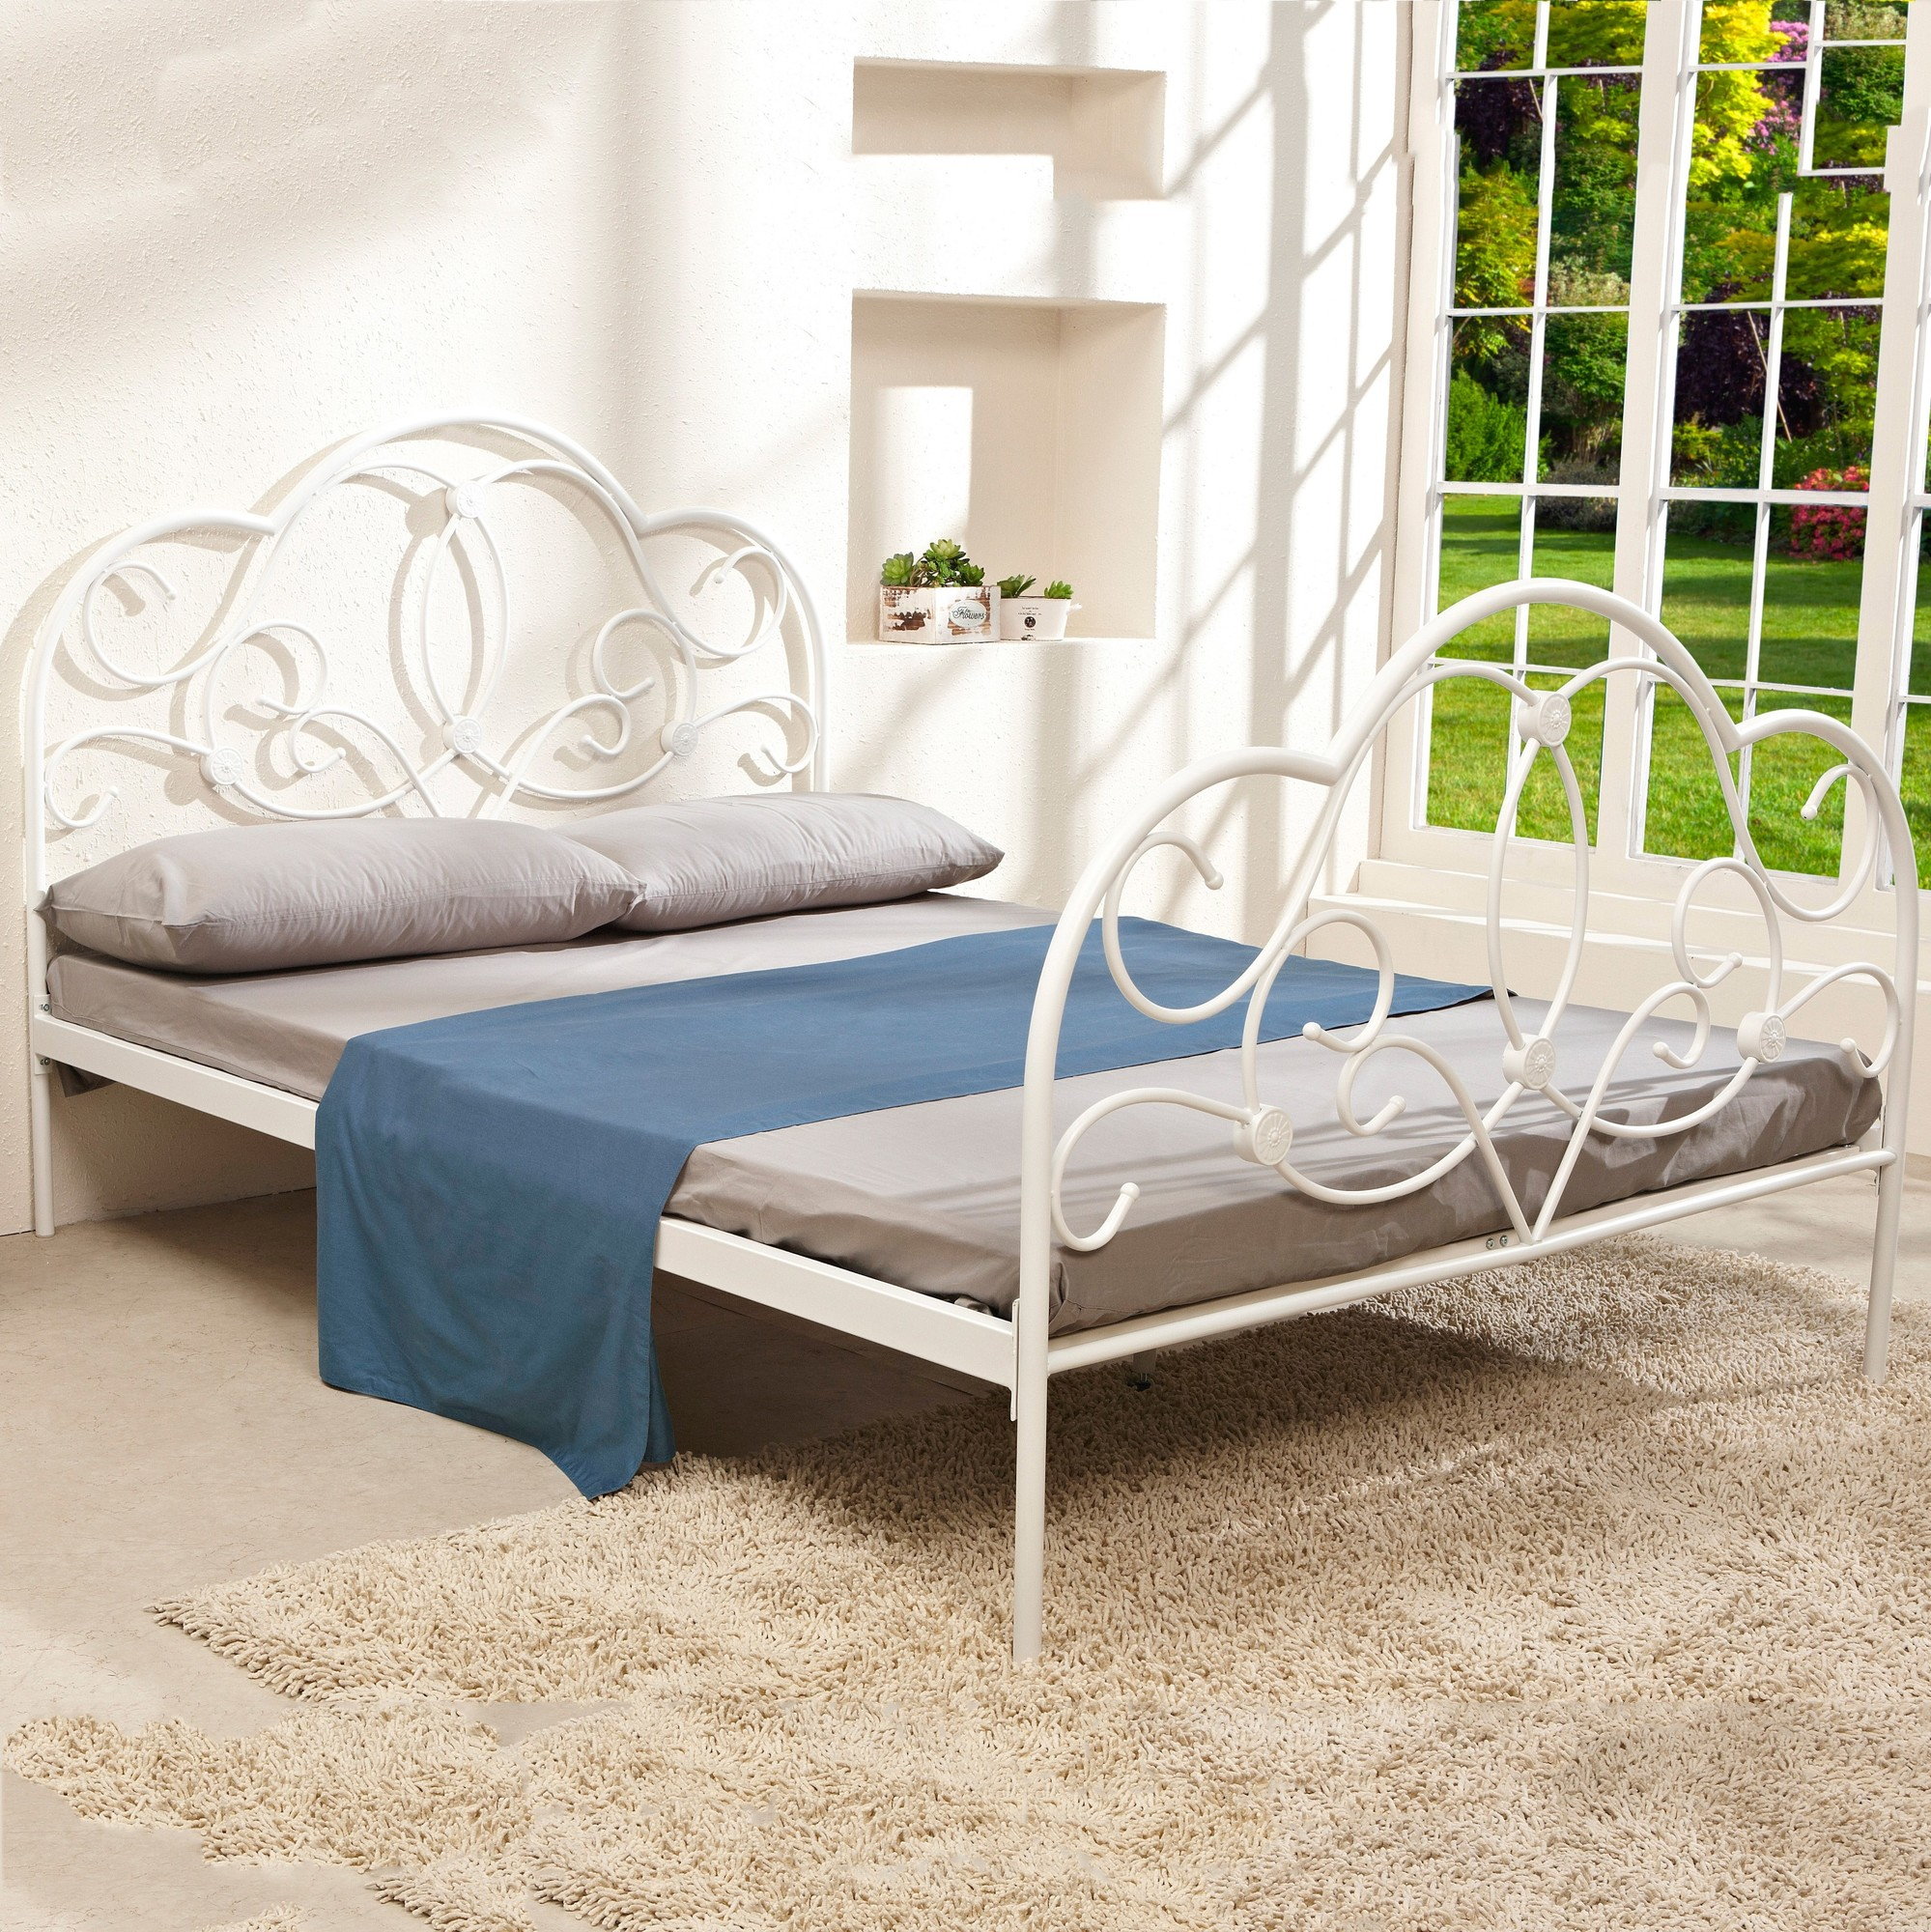 sku iqki1040 white metal queen size curved bed frame is also sometimes listed under the following manufacturer numbers kfwt003quwh tp - White Metal Queen Bed Frame